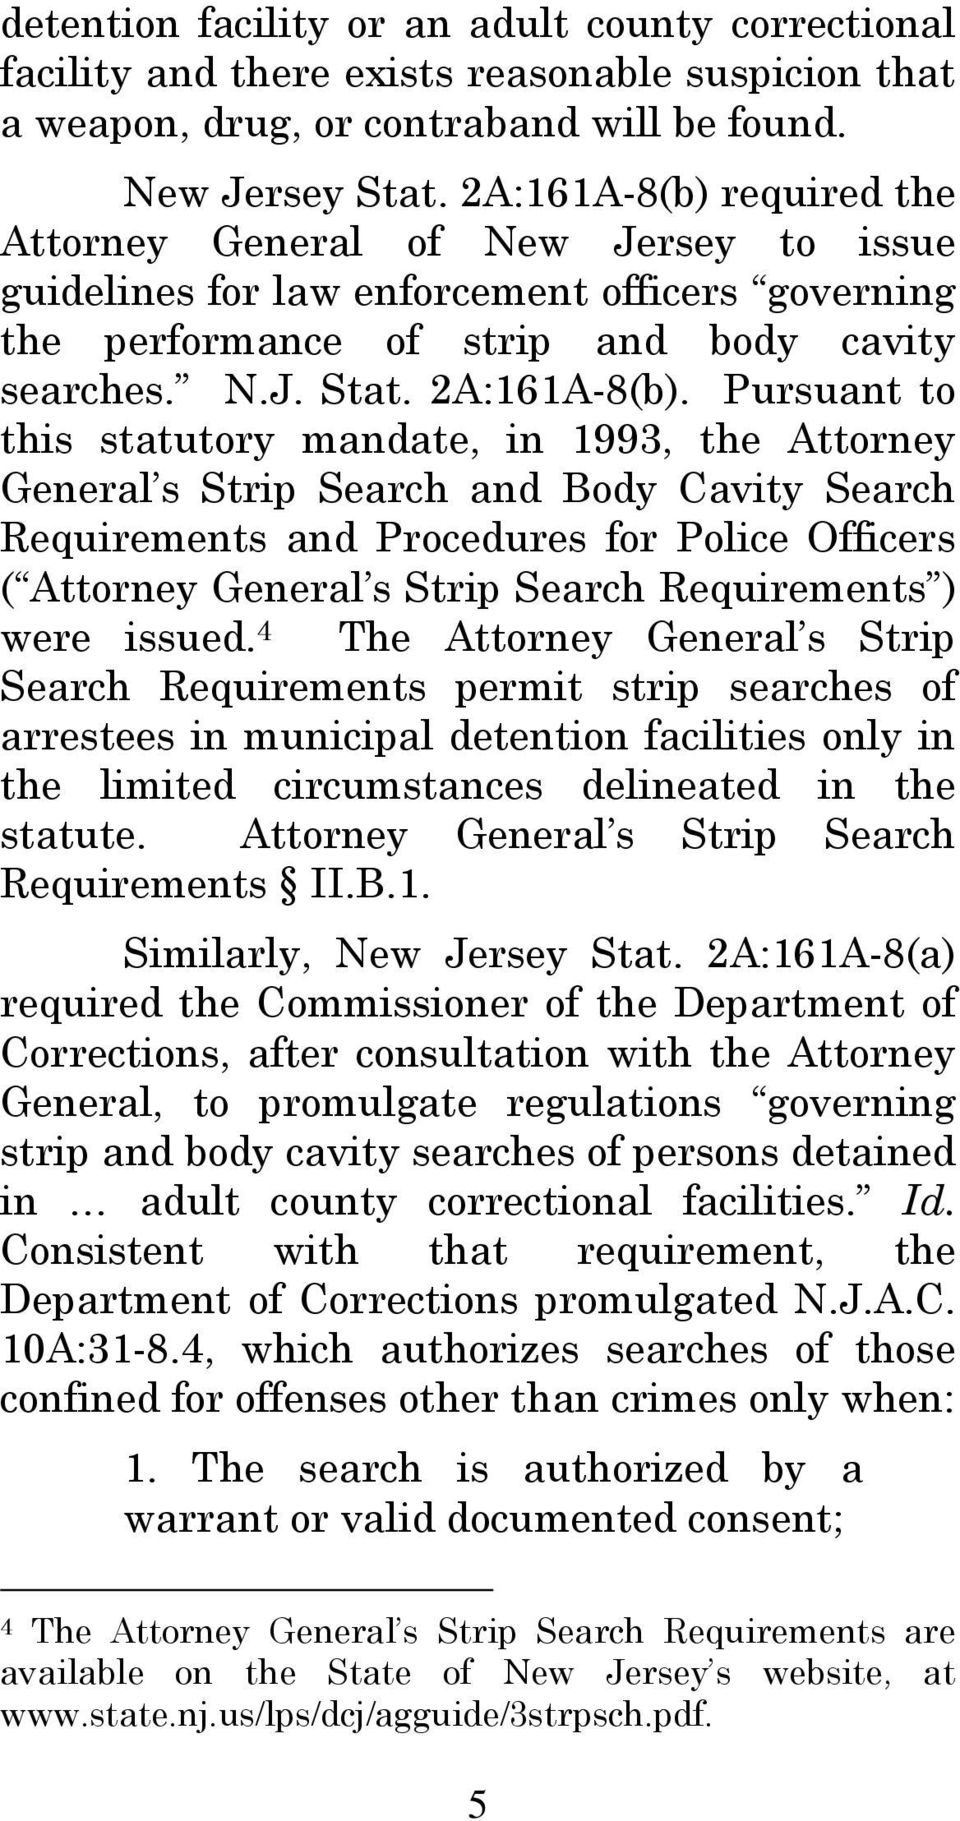 Pursuant to this statutory mandate, in 1993, the Attorney General s Strip Search and Body Cavity Search Requirements and Procedures for Police Officers ( Attorney General s Strip Search Requirements